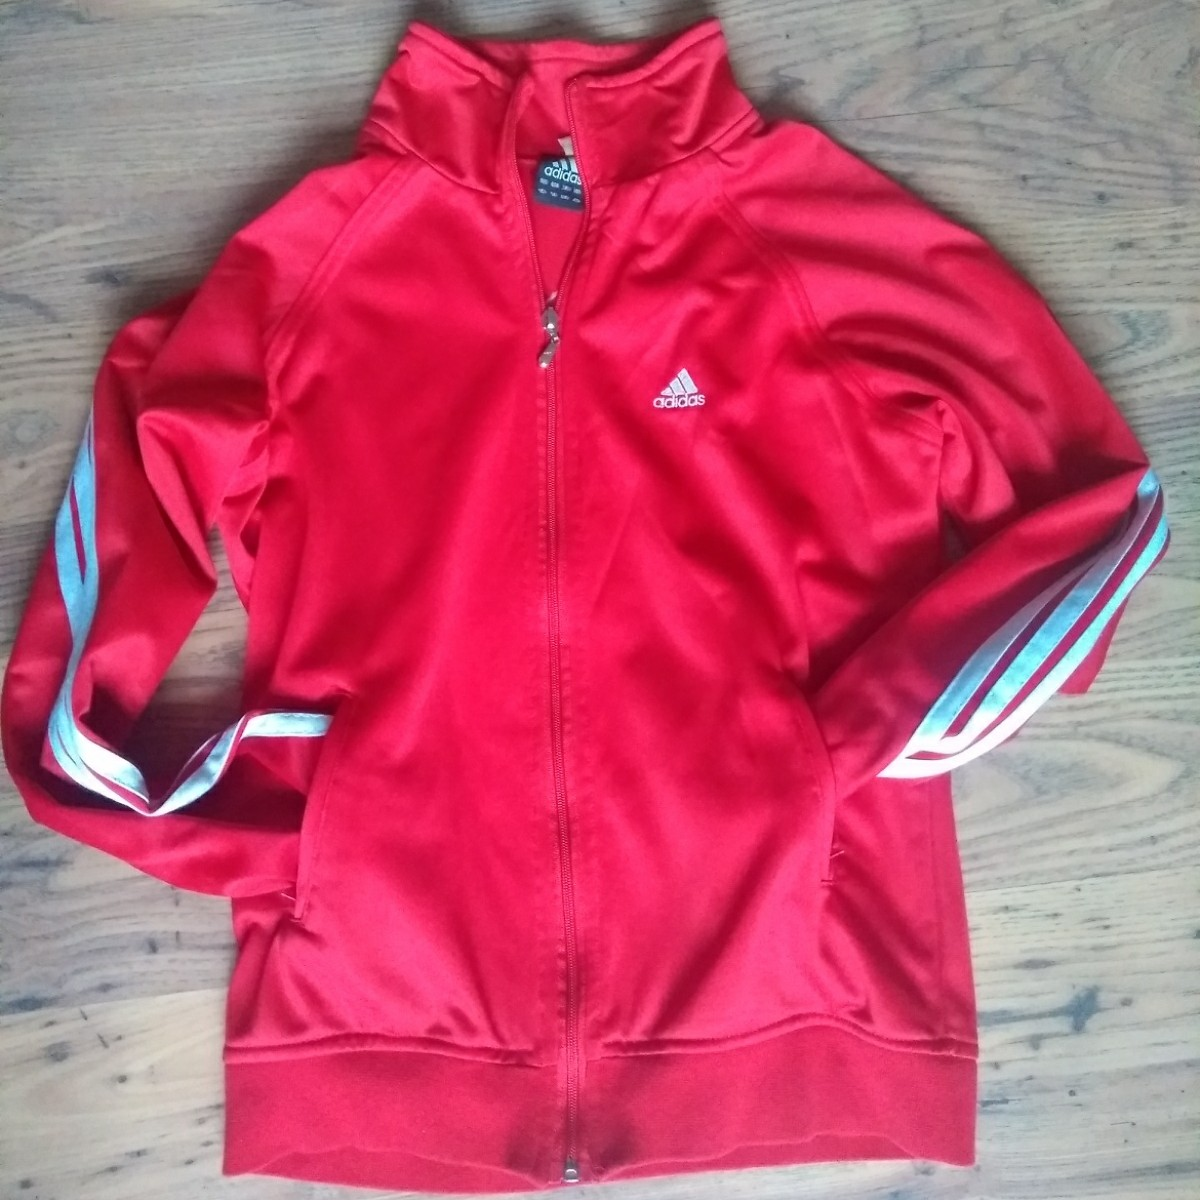 RED ADIDAS HOODIE WITH THREE WHITE STRIPES DOWN THE ARMS AND